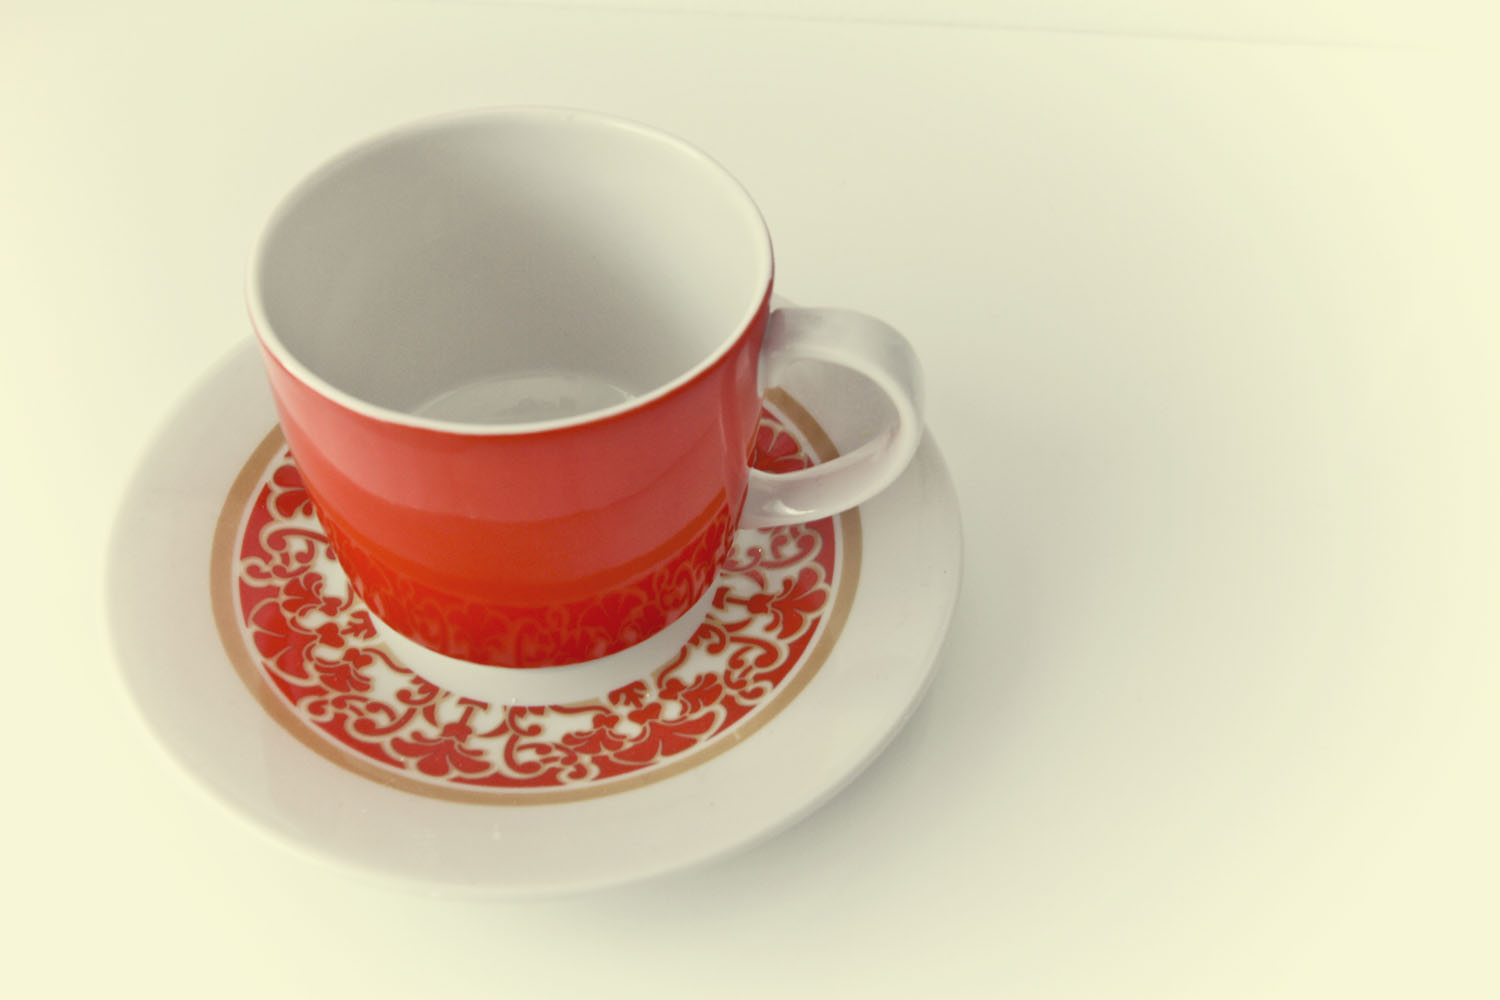 Royal Doulton Seville Tea Cup